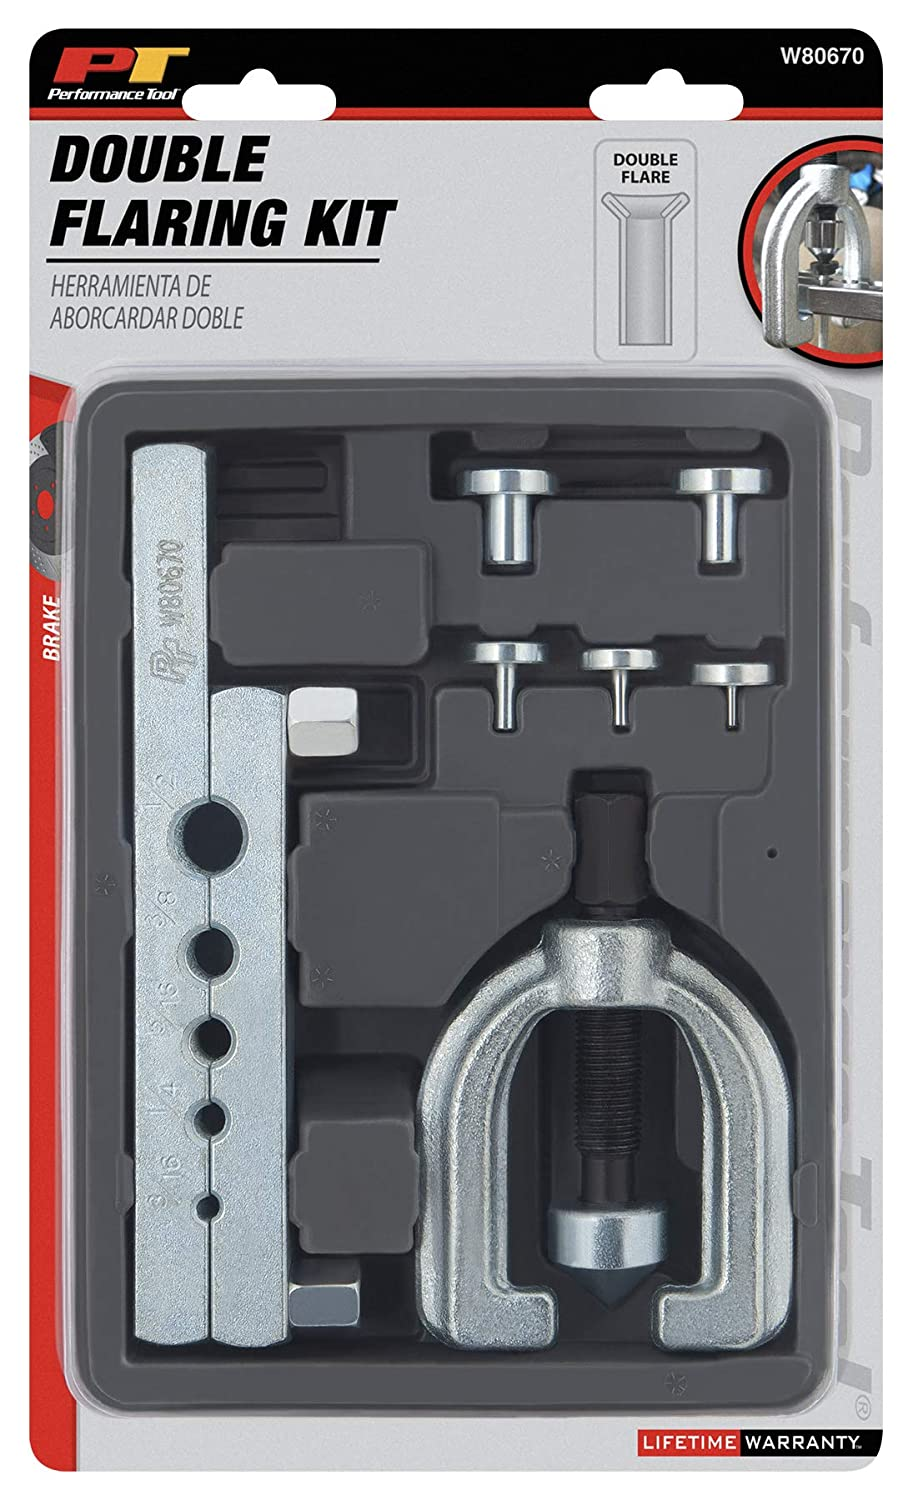 Performance Tool W80670 Double Flare Tool Set 7-Piece